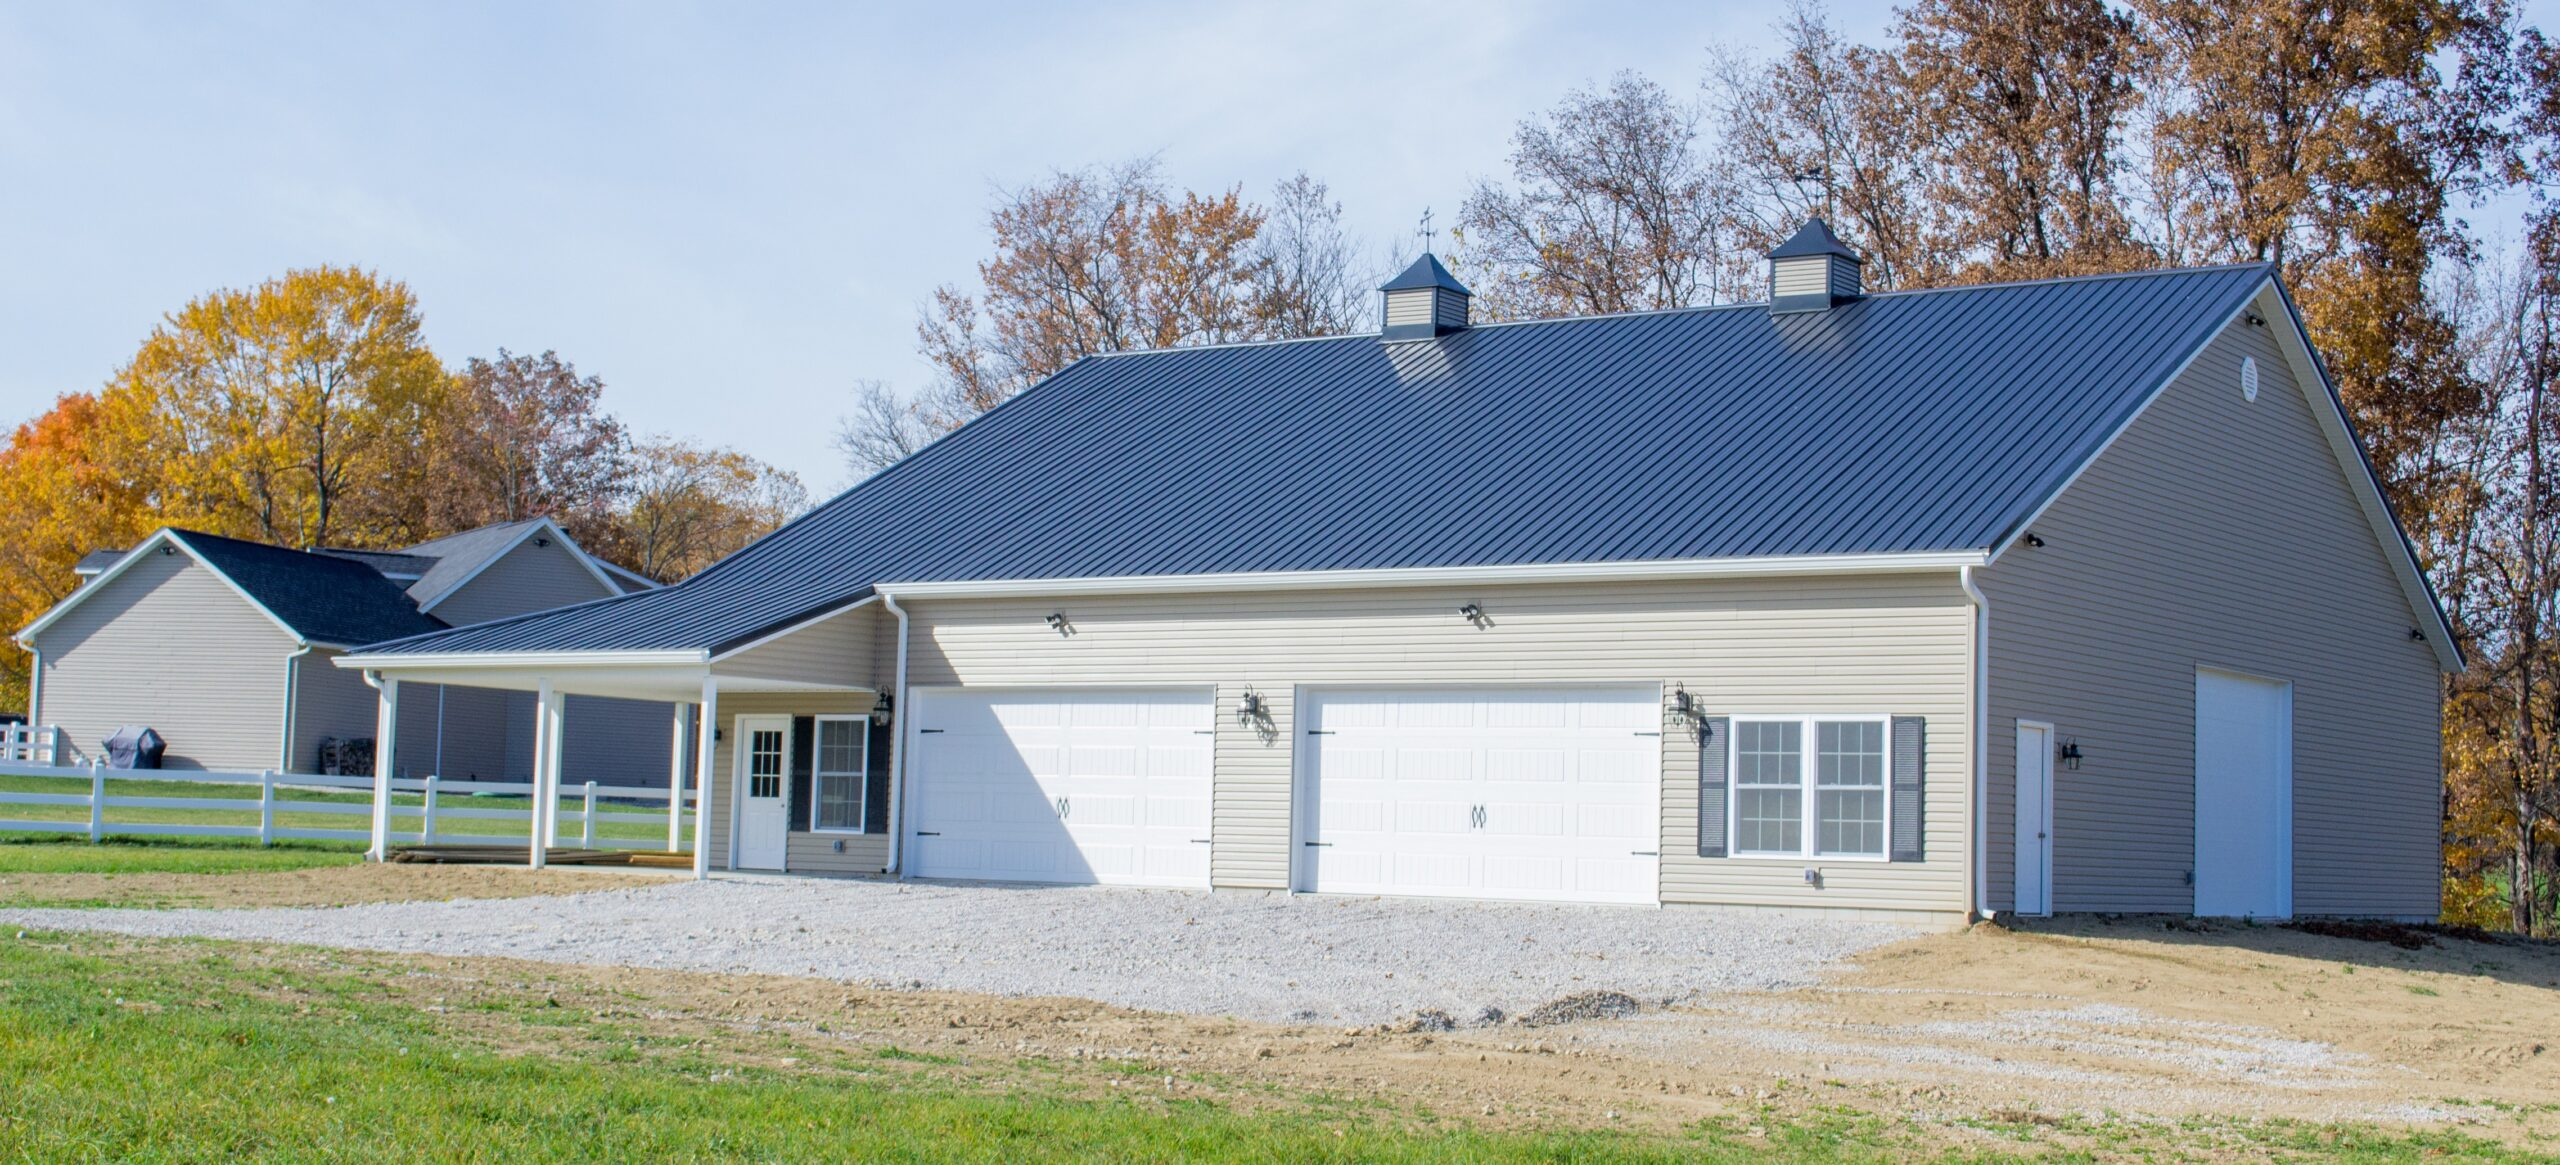 Pole Building Tan Siding with Black Shutters Built by Yoder Barn